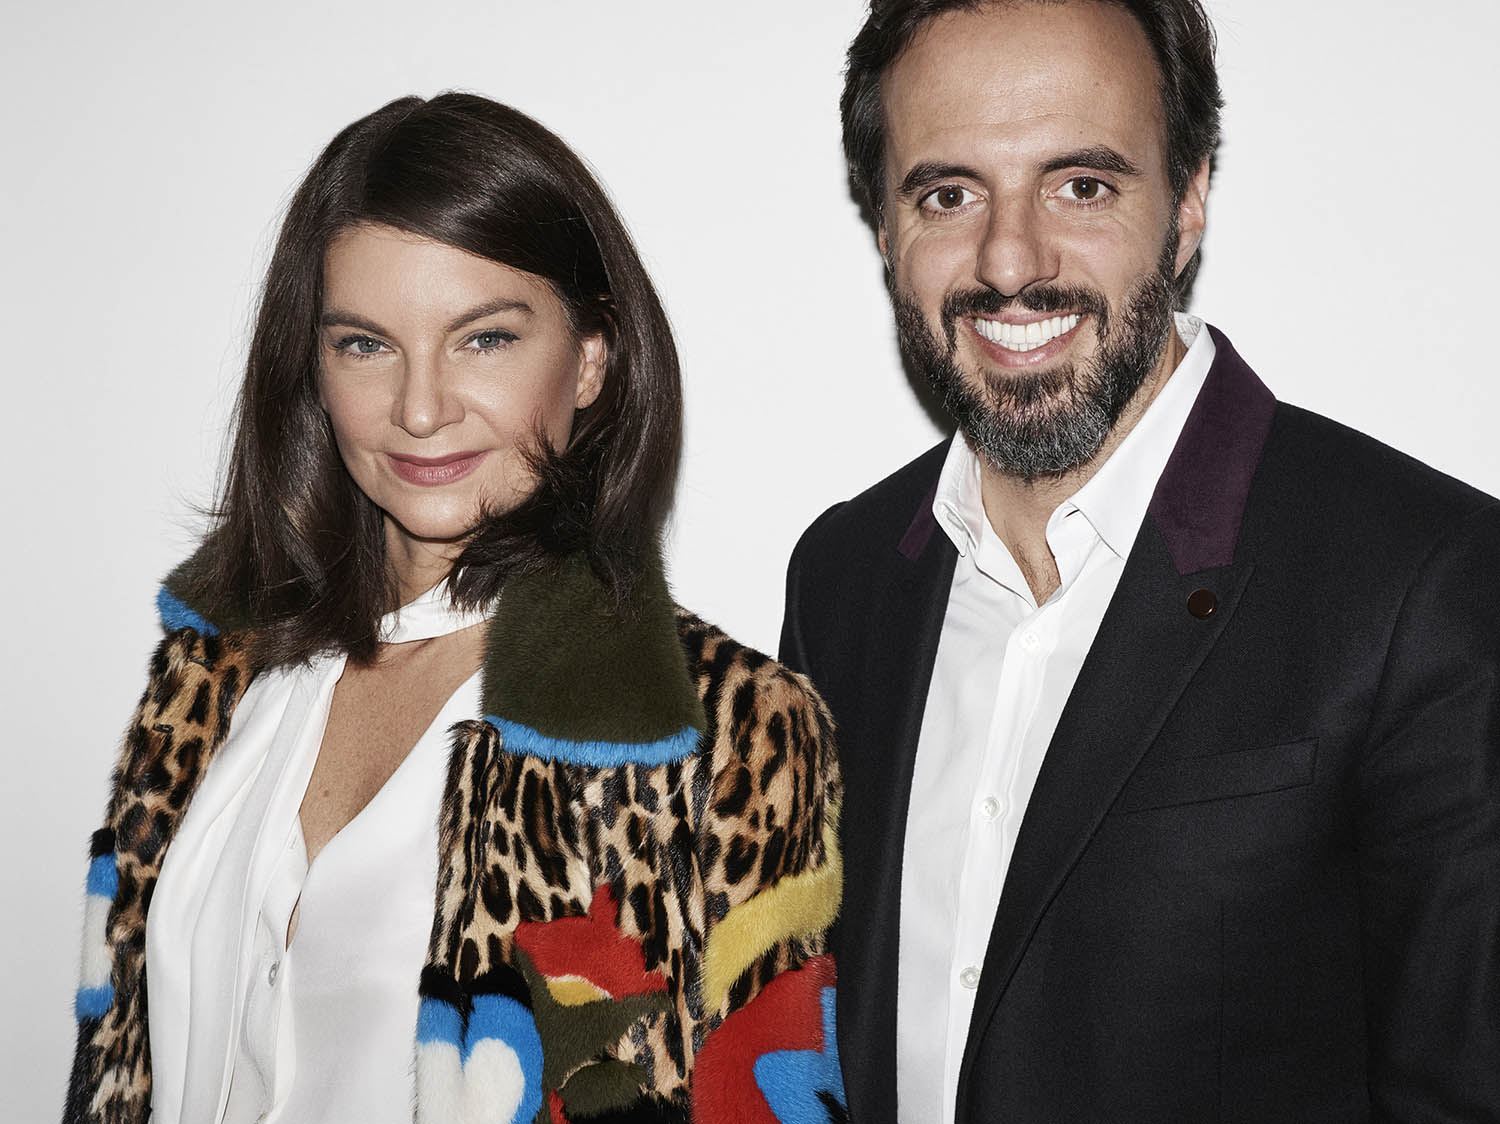 (左) Natalie Massenet、(右) José Neves | Courtesy Farfetch Press Office